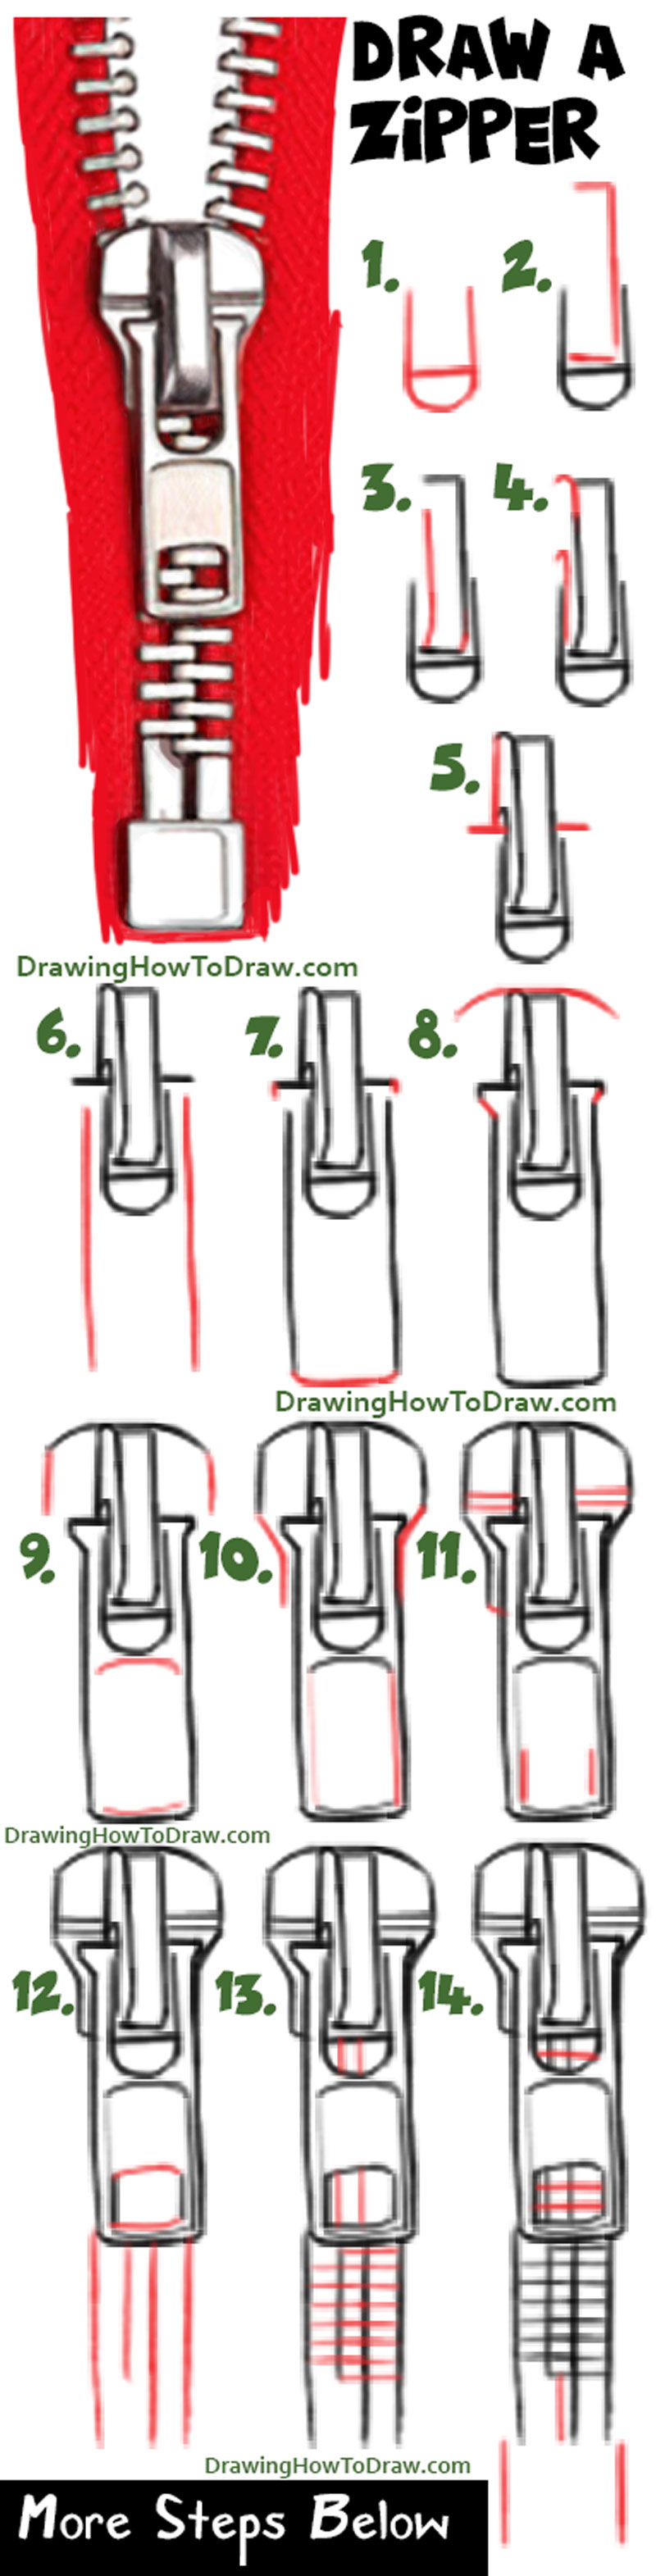 Learn How to Draw a Zipper Easy Step by Step Drawing Tutorial for Beginners